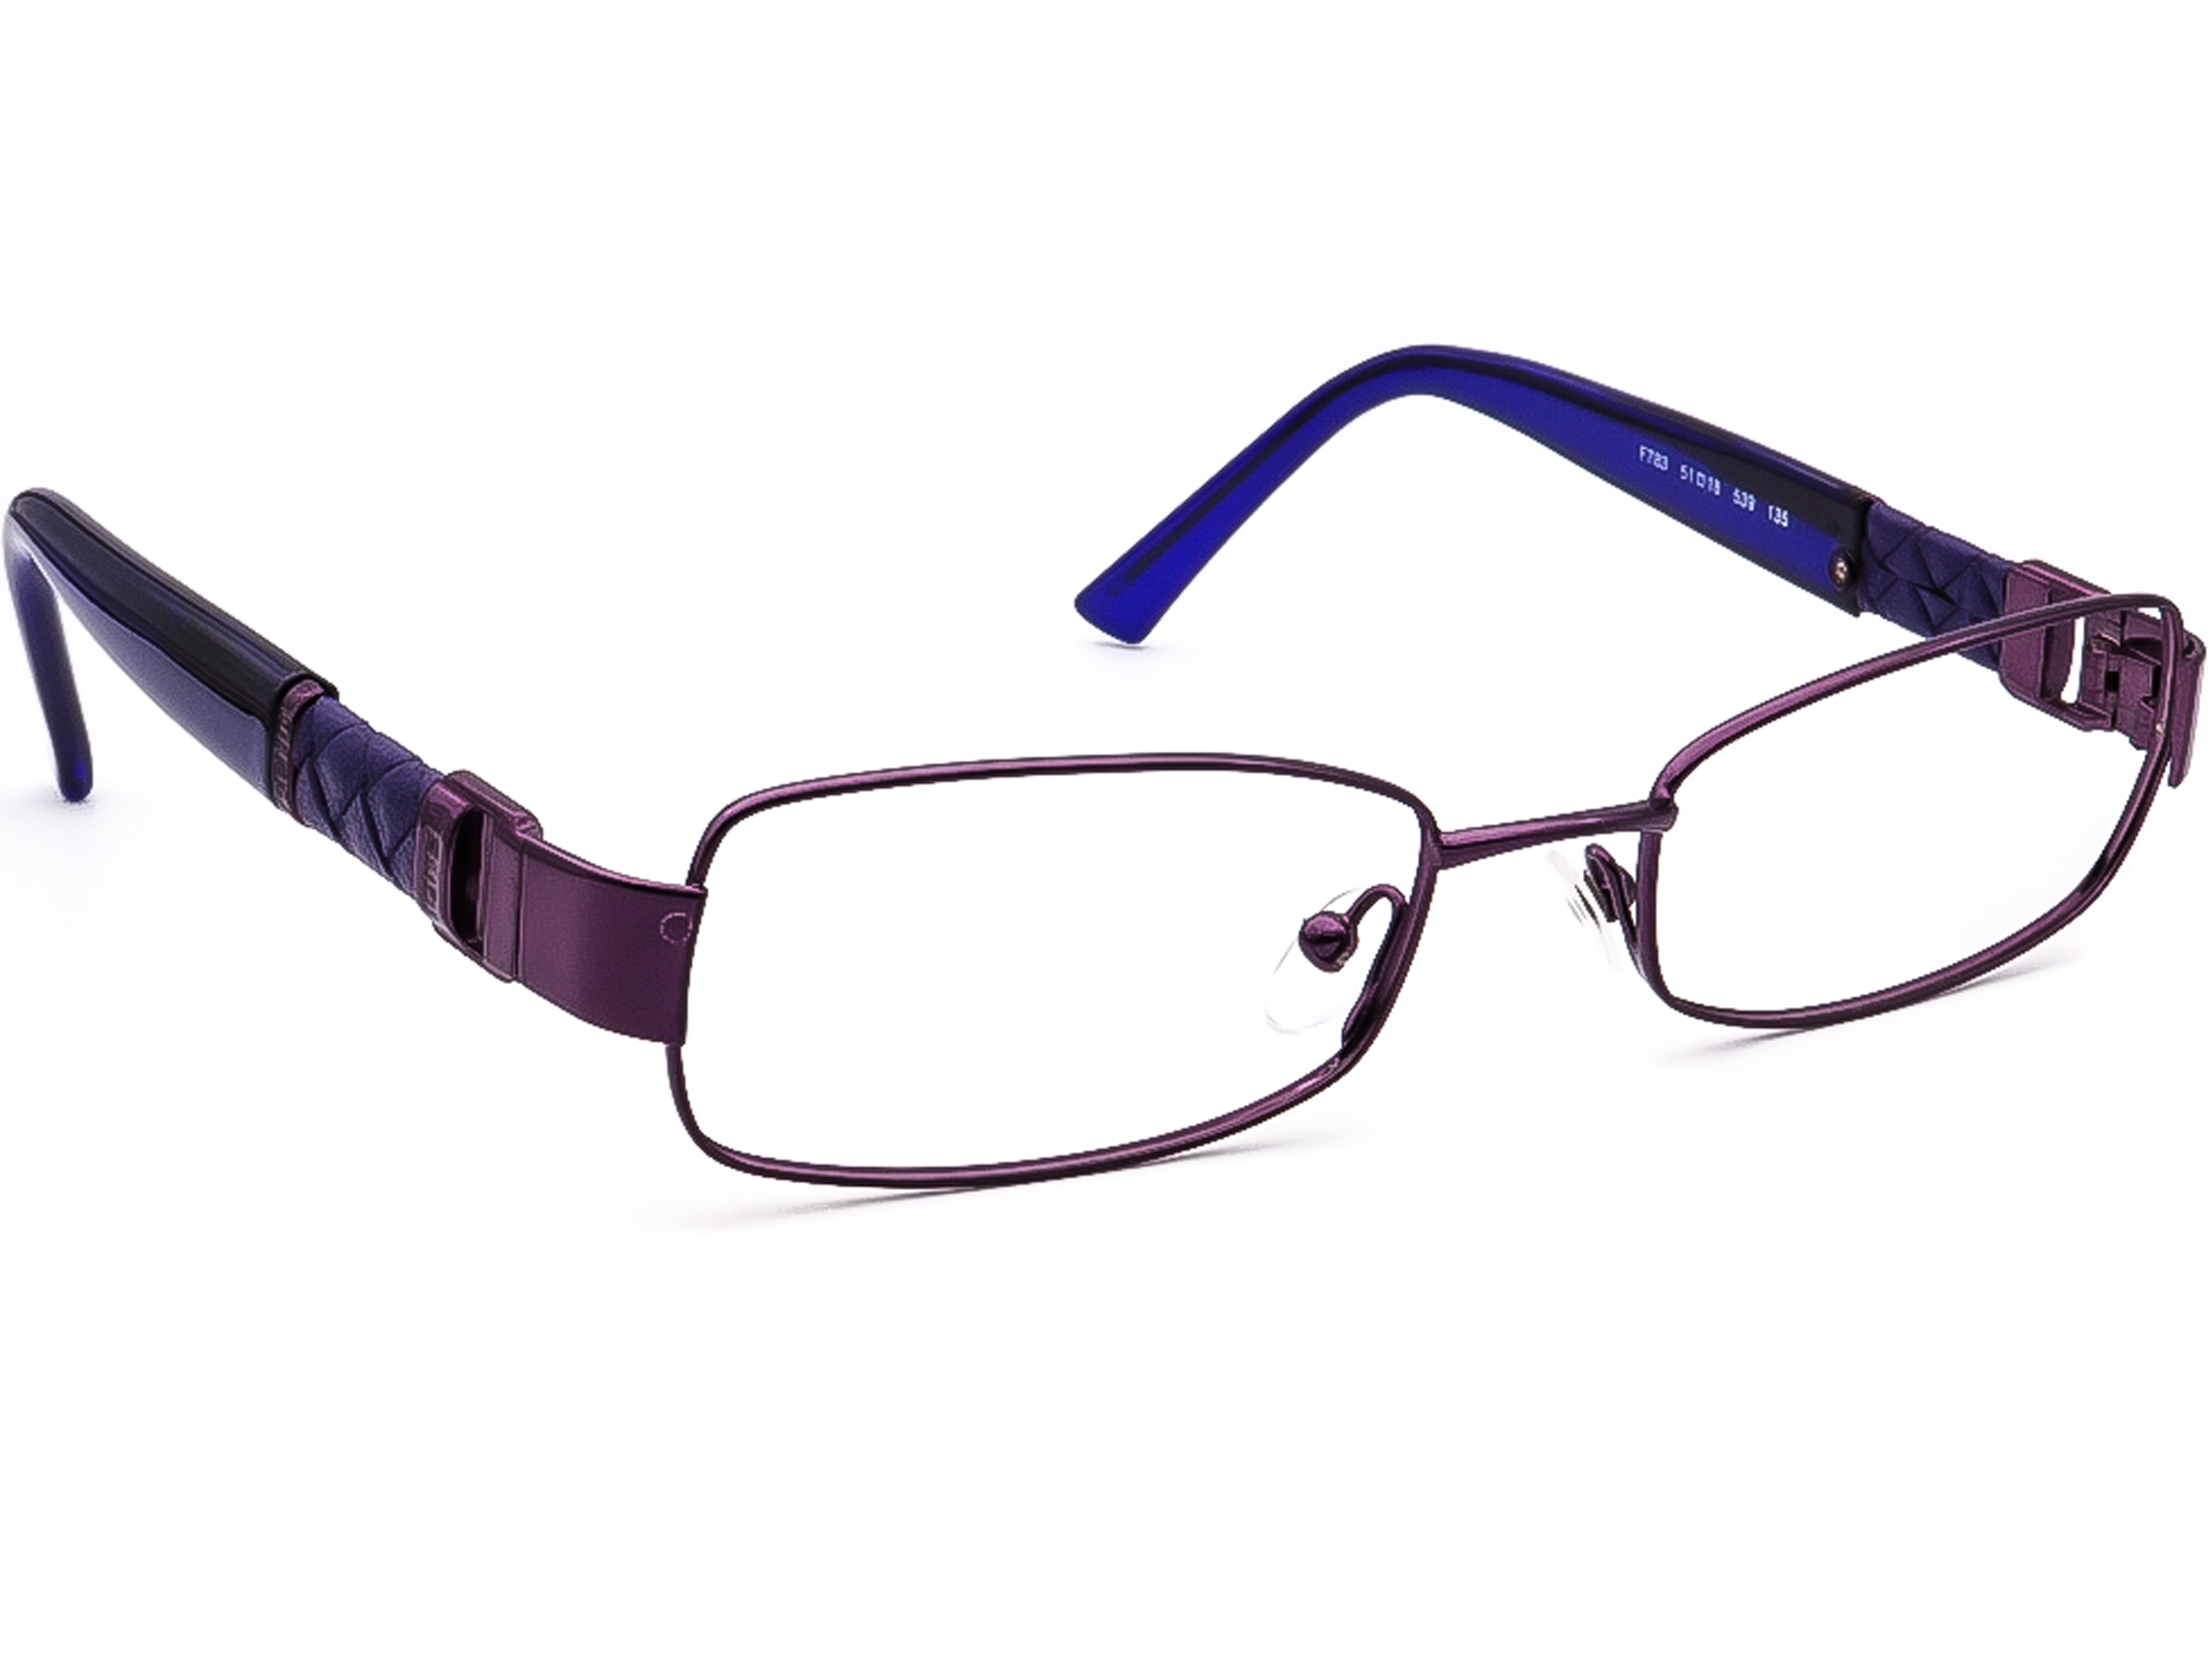 Fendi F783 539 Eyeglasses